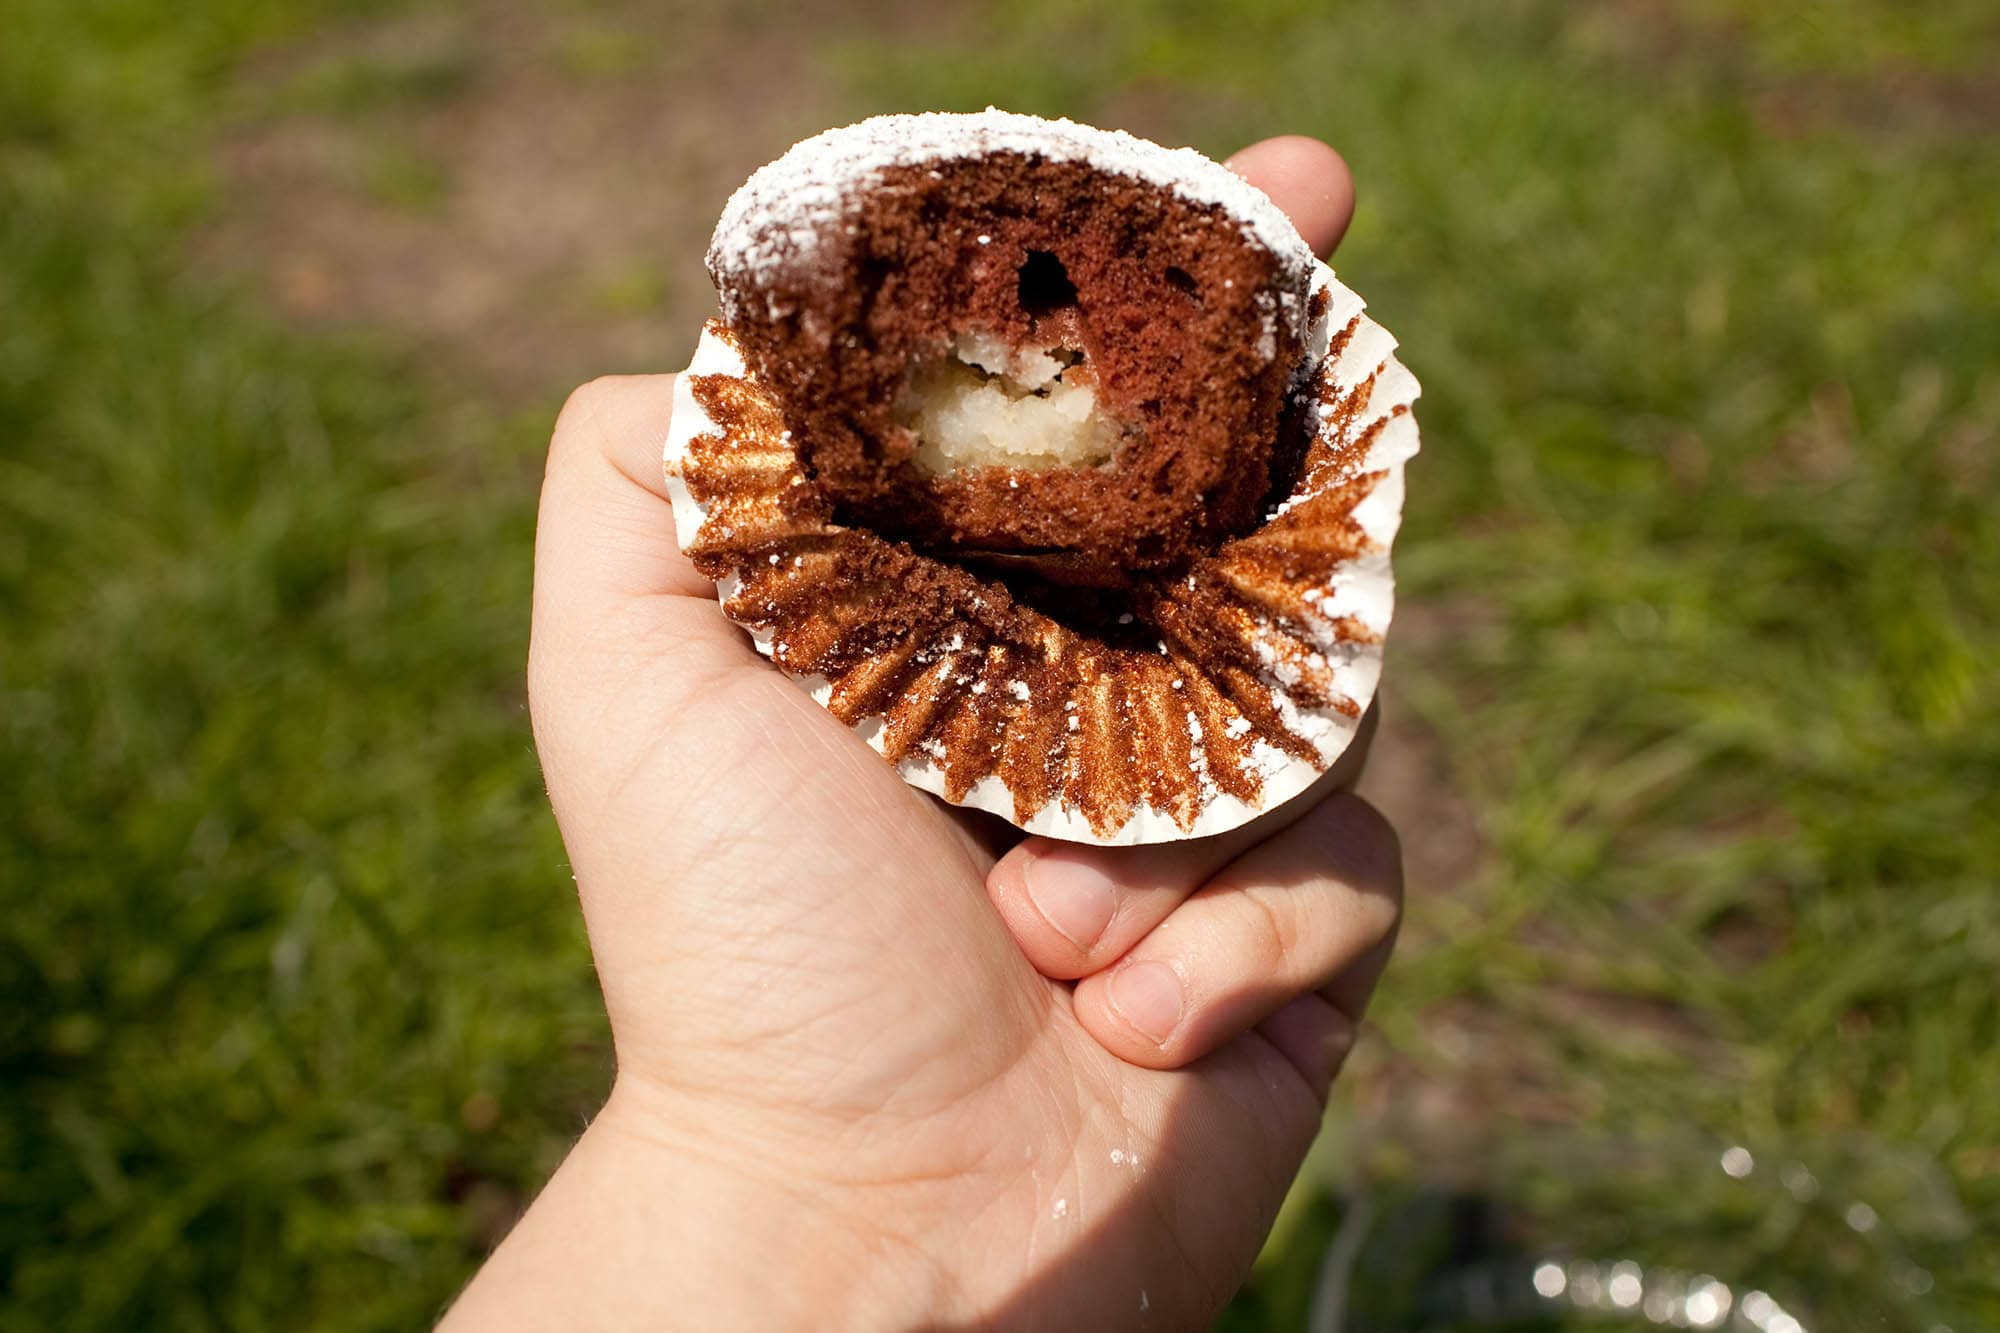 mashed potatoes filled chocolate cupcake at Taste of Chicago